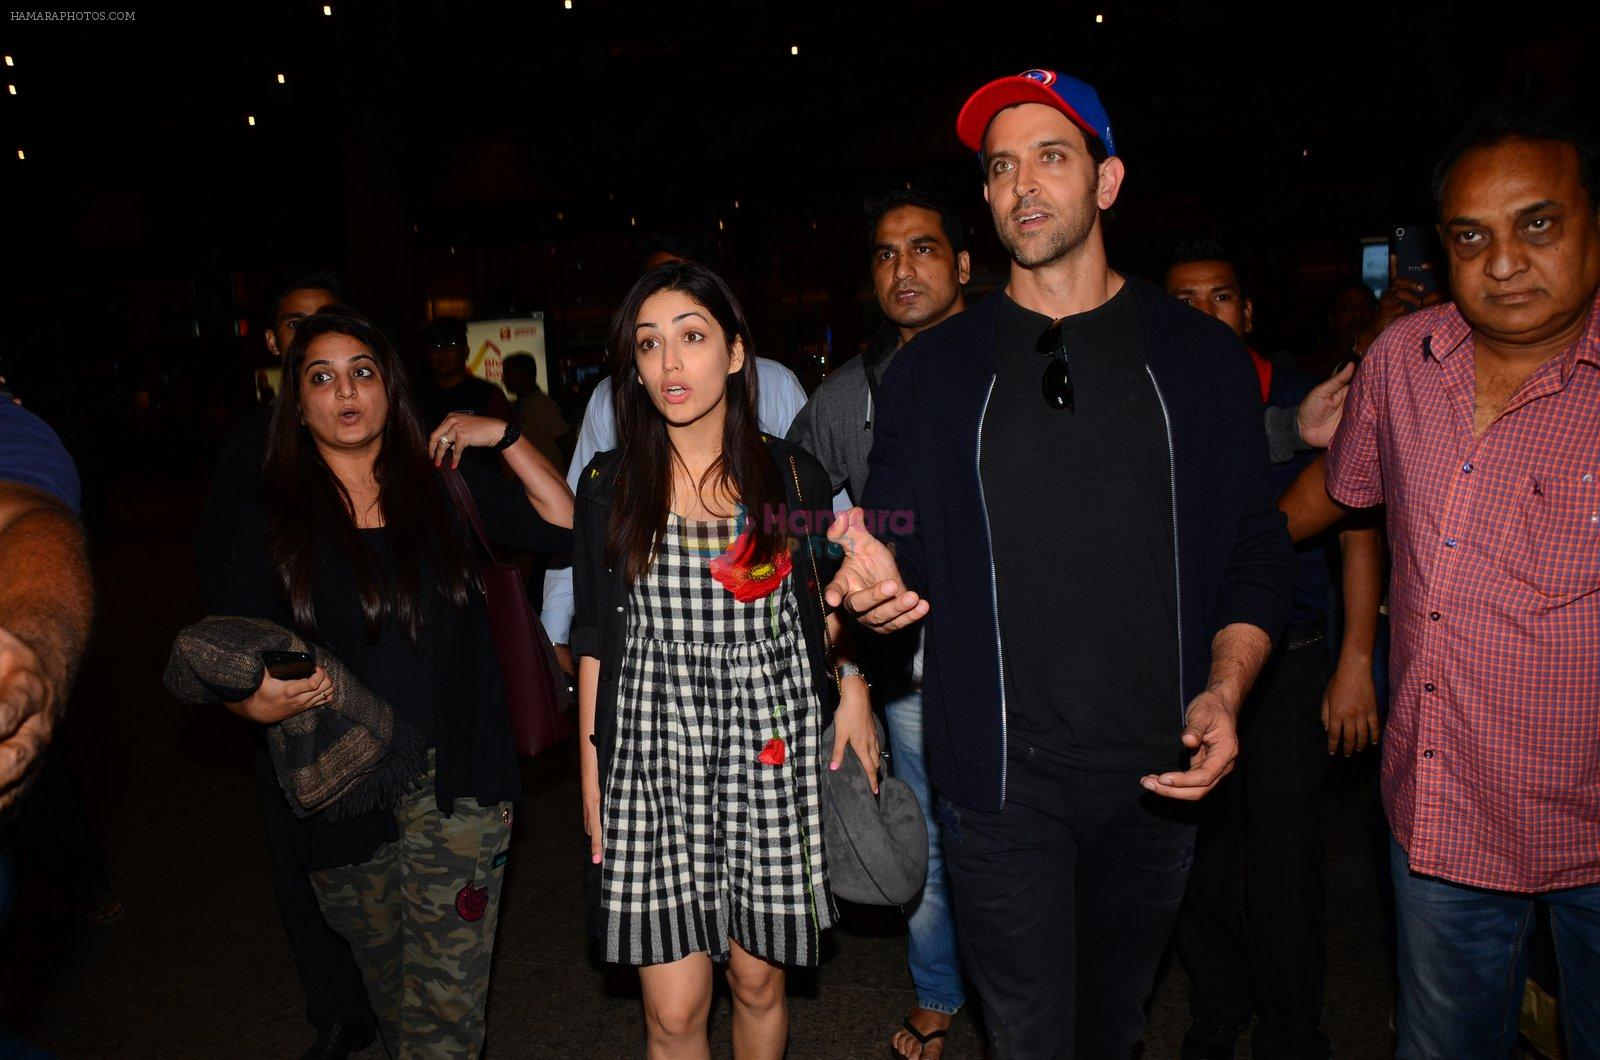 Hrithik Roshan and Yami Gautam return from Dubai on 9th Jan 2017